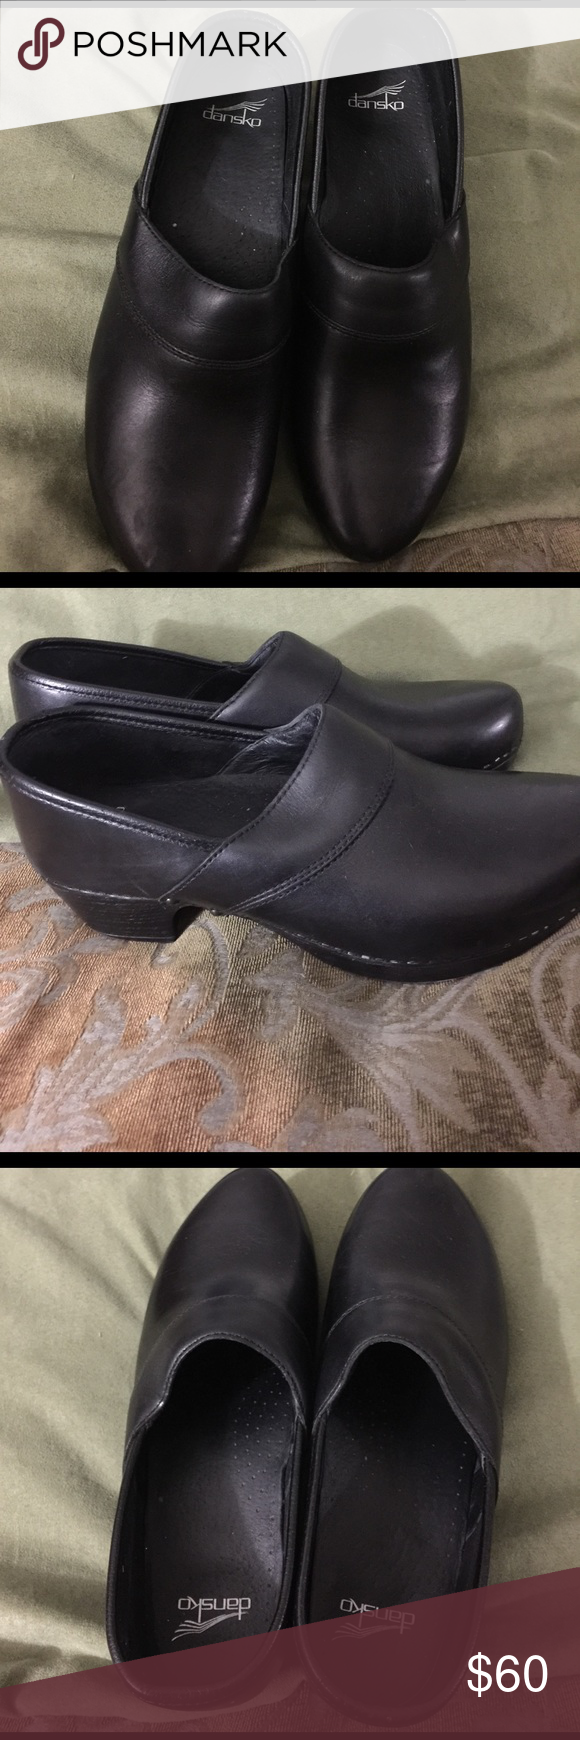 Shoes Black leather Dansko from The